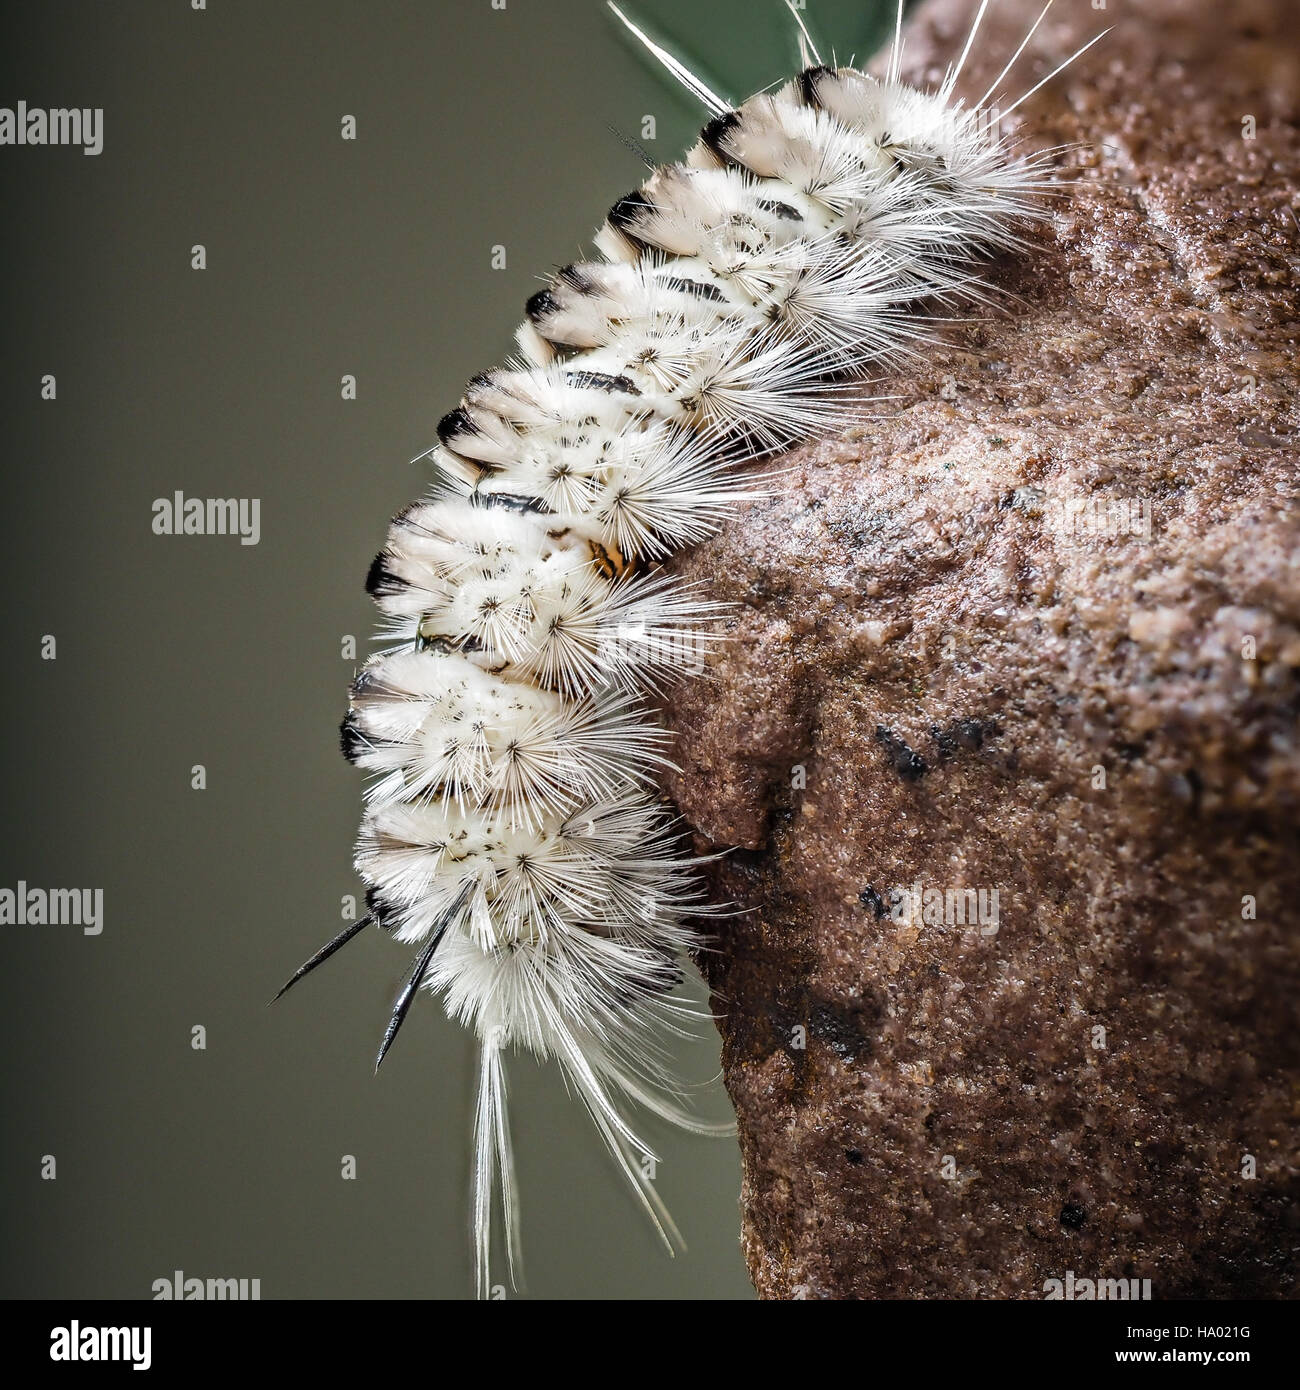 Poisonous white Hickory Tussock Moth Caterpillar on wet rock - Stock Image